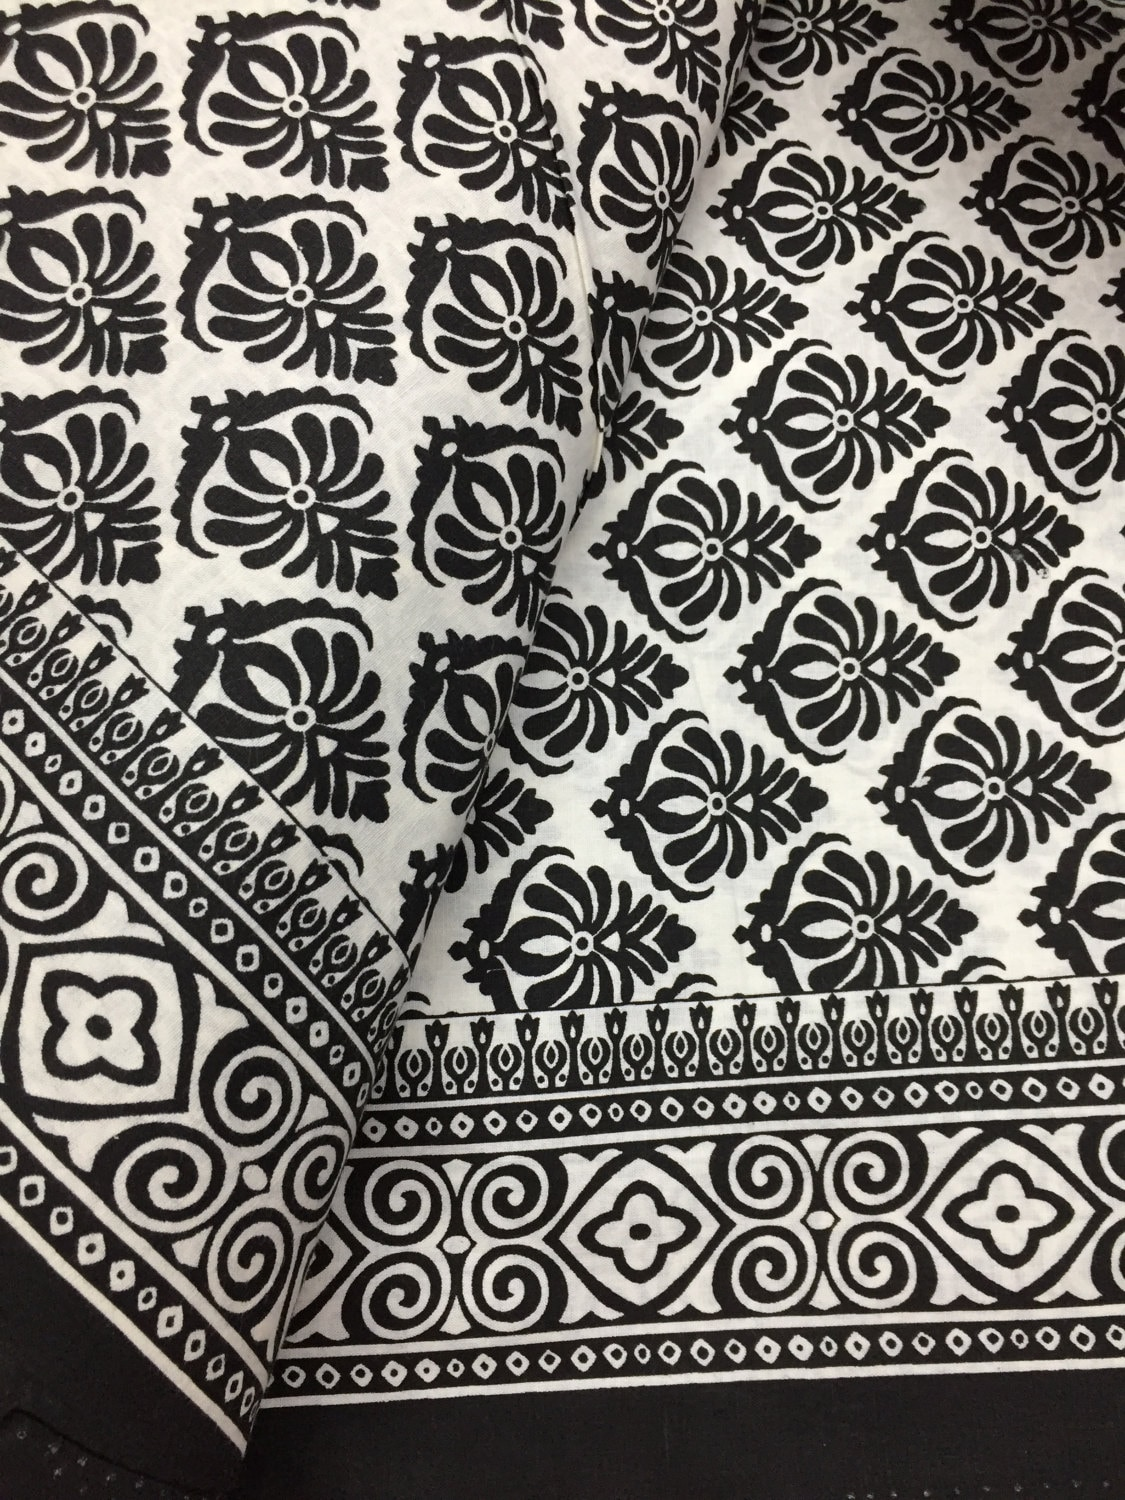 Indian print fabric images galleries for Fabric printing